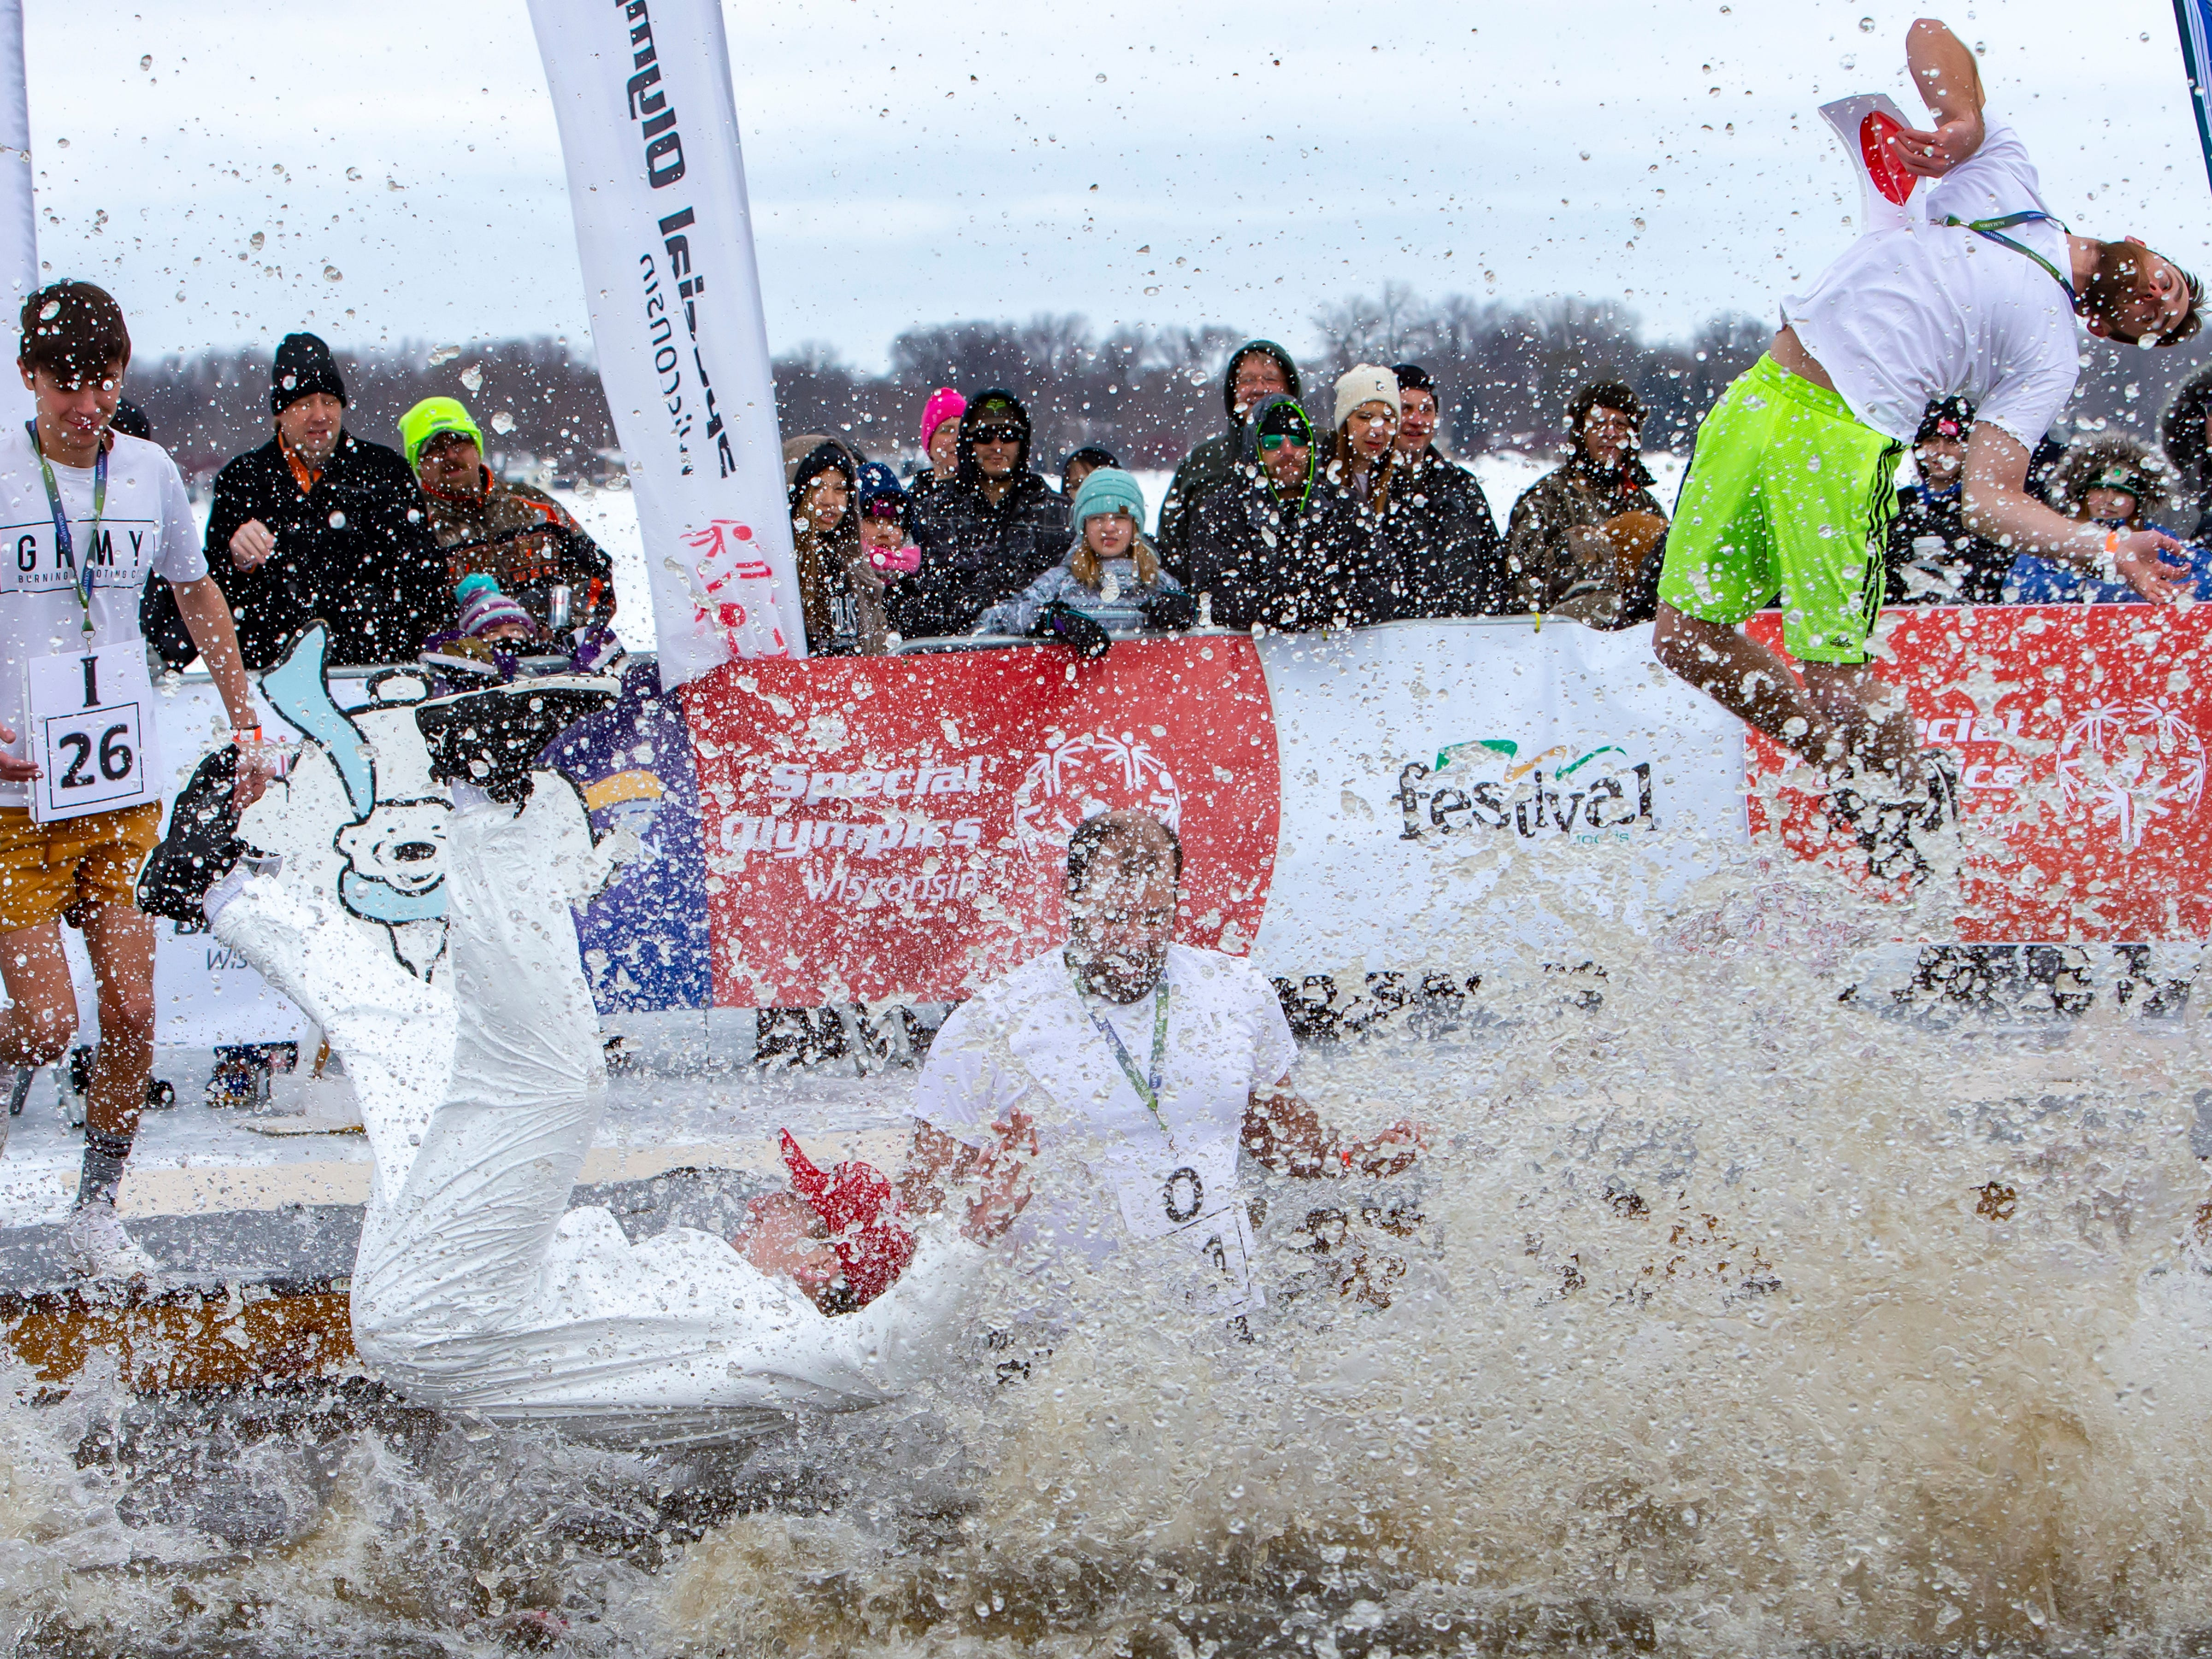 McMahon employees take the plunge during the Special Olympics Wisconsin Polar Plunge in Oshkosh, Wis., on Saturday, February 16, 2019, at Miller's Bay in Menominee Park.